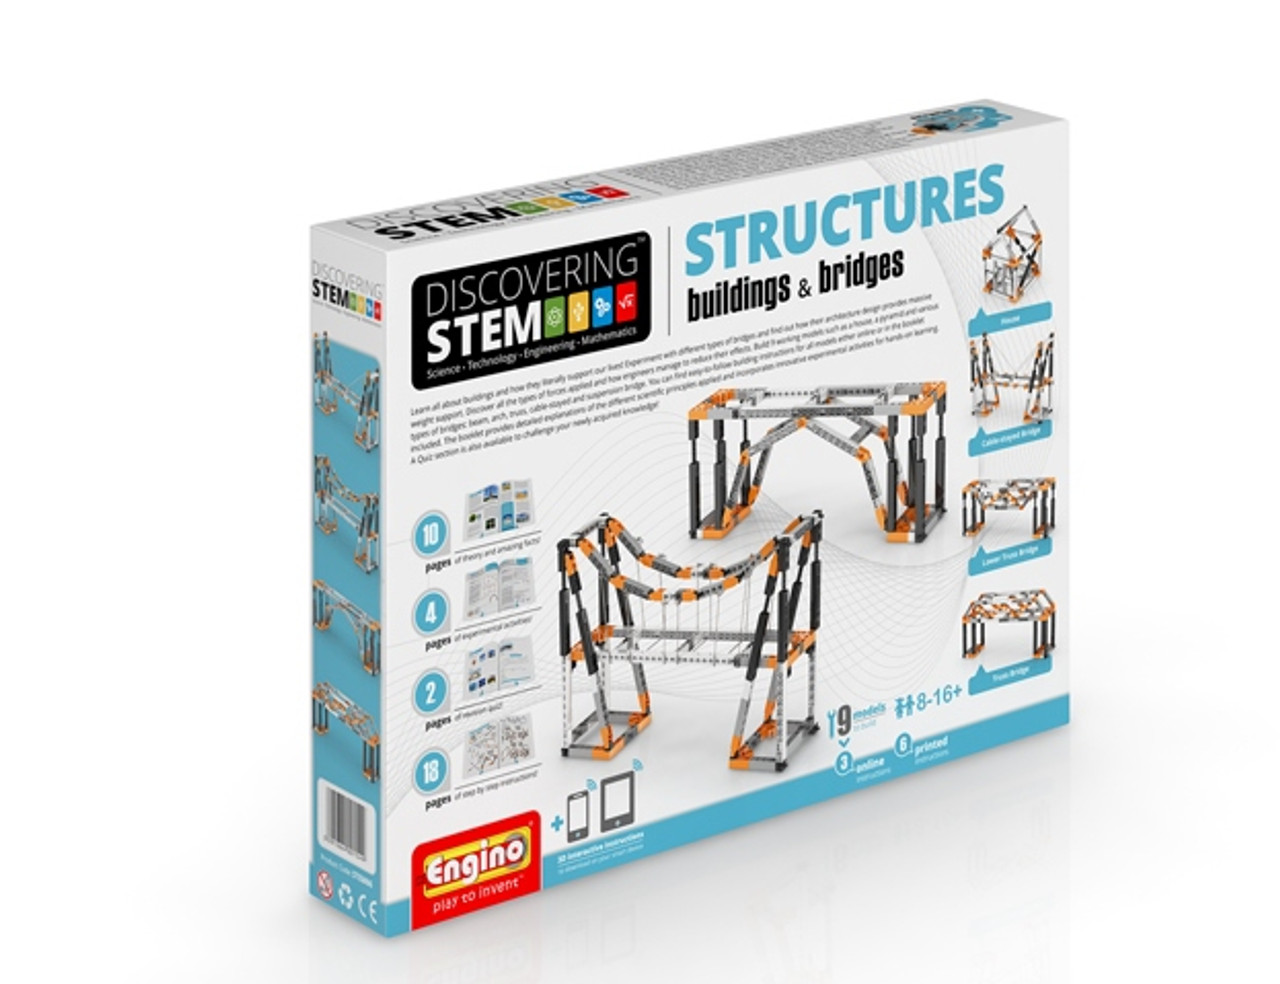 STEM STRUCTURES:Buildings & Bridges